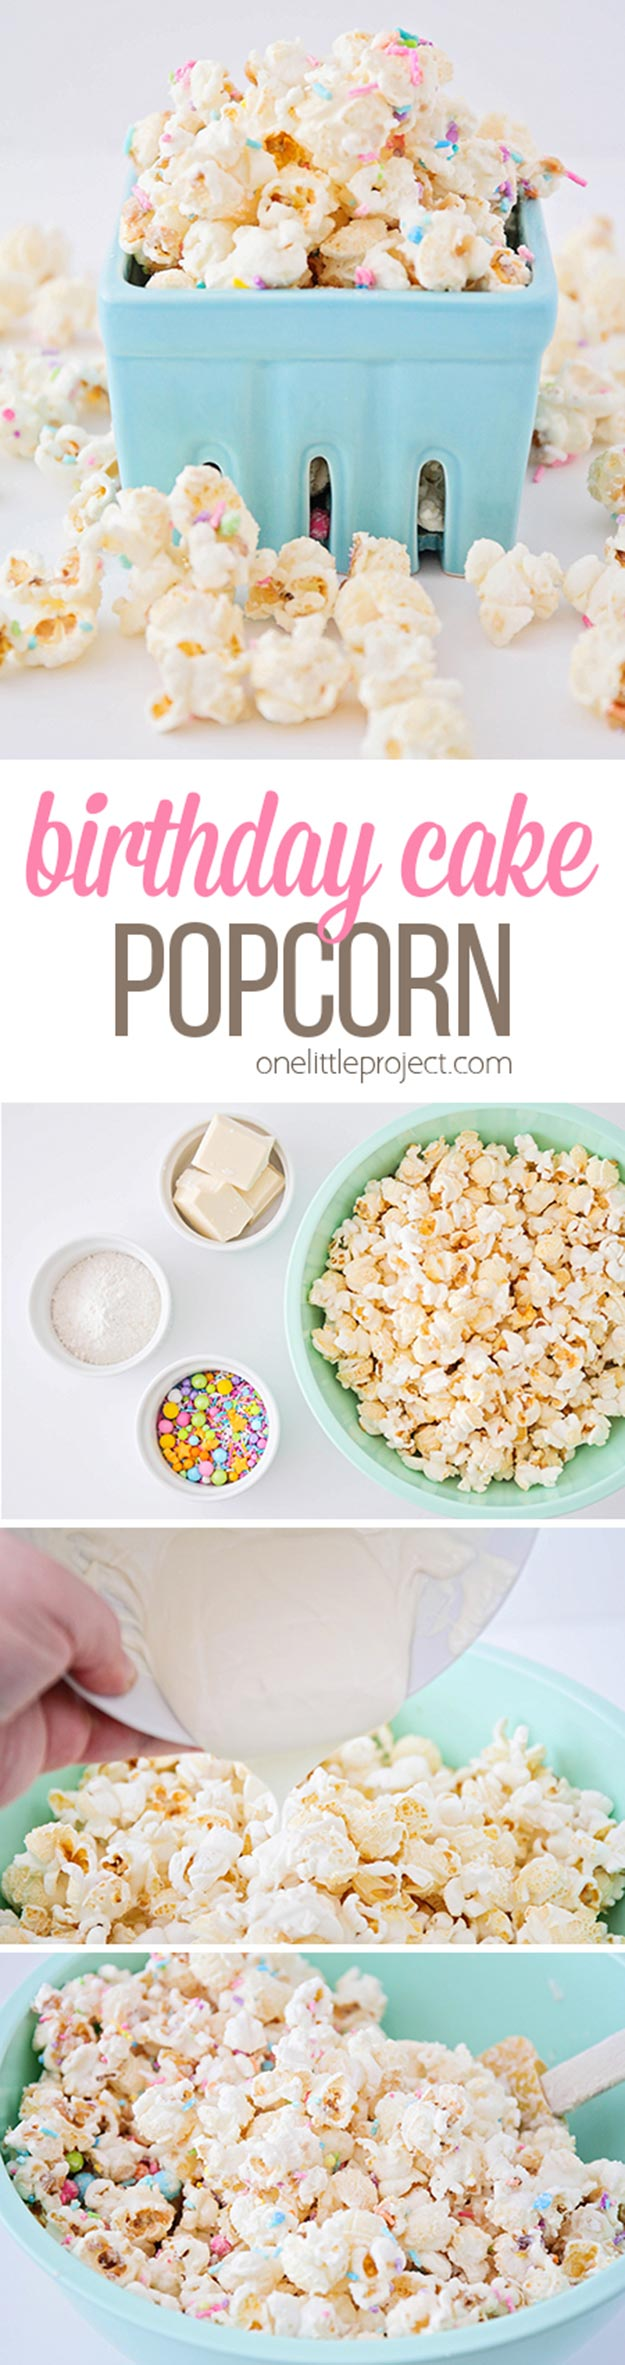 Cool and Easy Dessert Recipes For Teens to Make at Home - Birthday Cake Popcorn - Fun Desserts to Make With Chocolate, Fruit, Whipped Cream, Low Sugar, and Banana - Cake, Cookiess, Pie, Ice Cream Shakes and Pops Made With Healthy Ingredients and Food You Love - Quick Recipe Ideas for No Bake and 5 Minute Dessert At Home http://teencrafts.com/fun-dessert-ideas-recipes